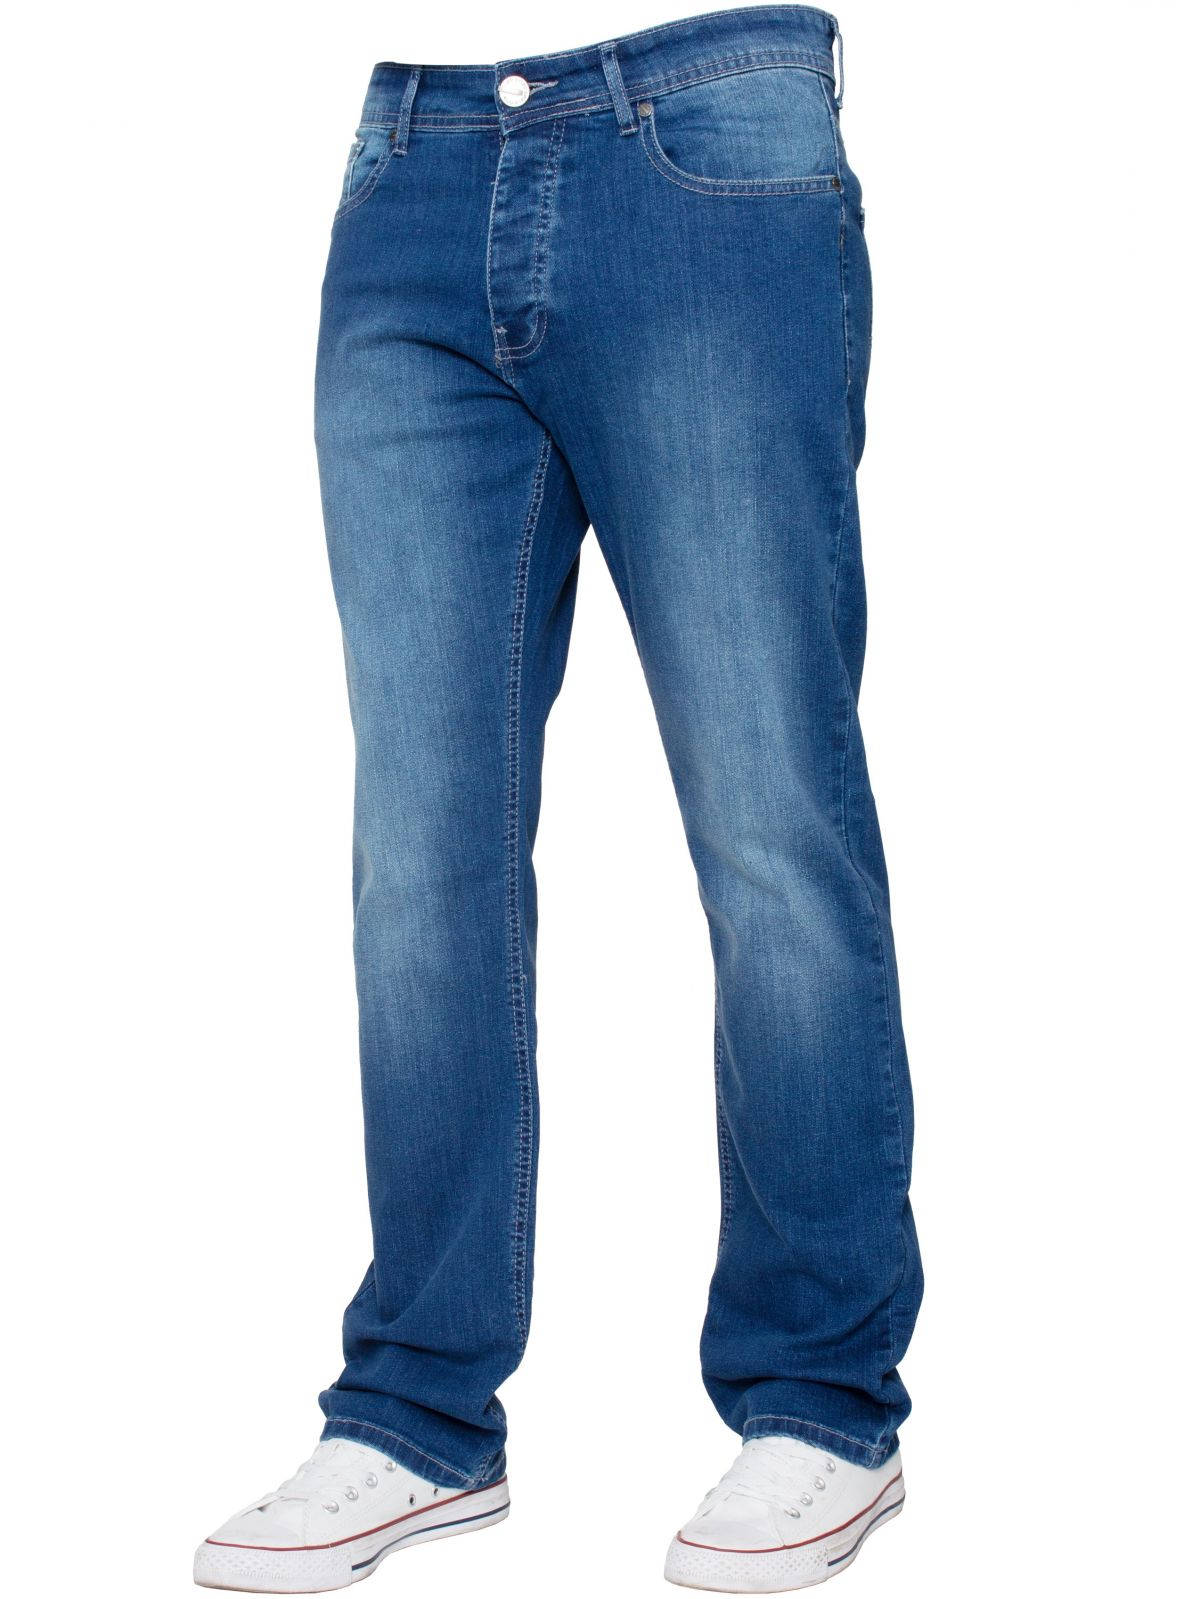 Mens Light Blue Regular Fit Stretch Denim Jeans | Enzo Designer Menswear